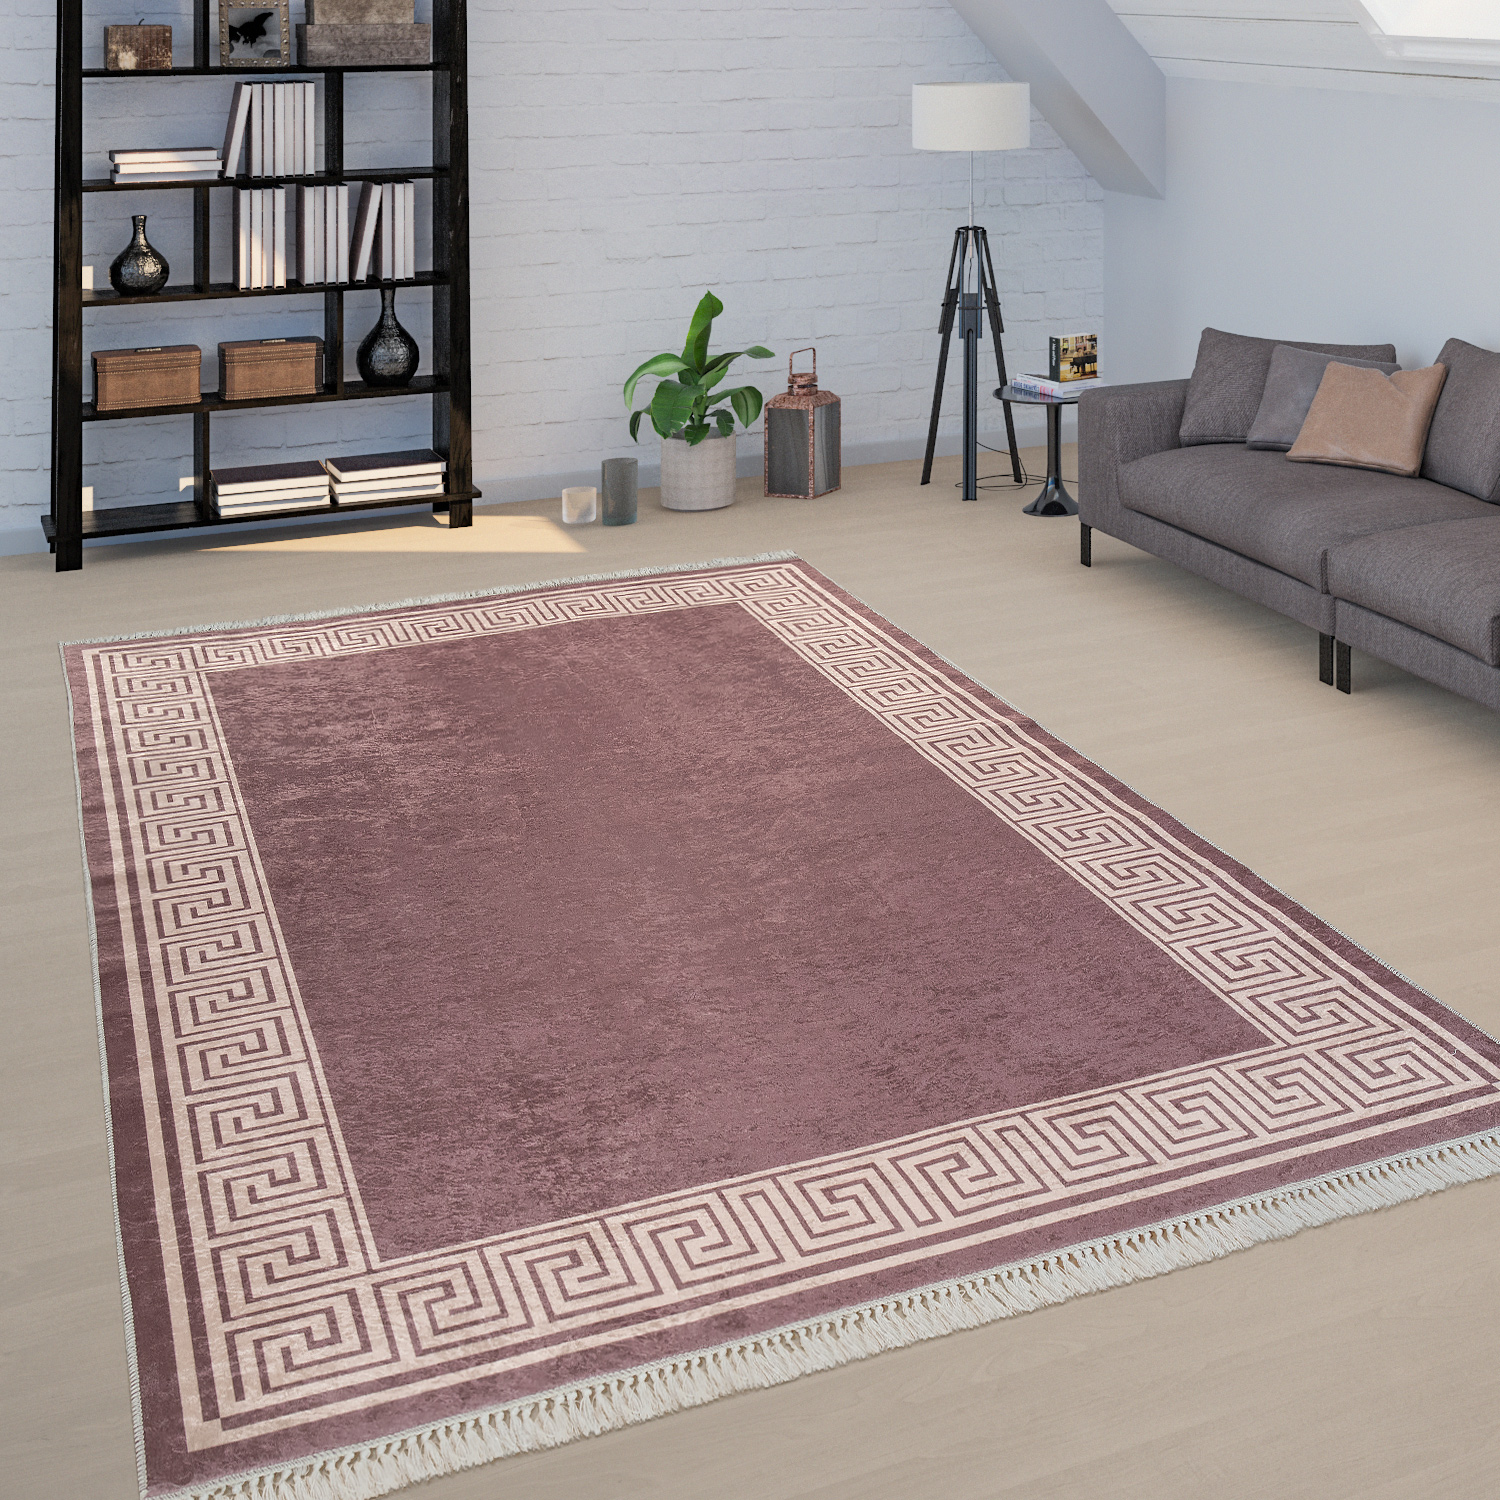 Rug Brown Beige Living Room Border Fretwork Design Hard-Wearing Short-Pile